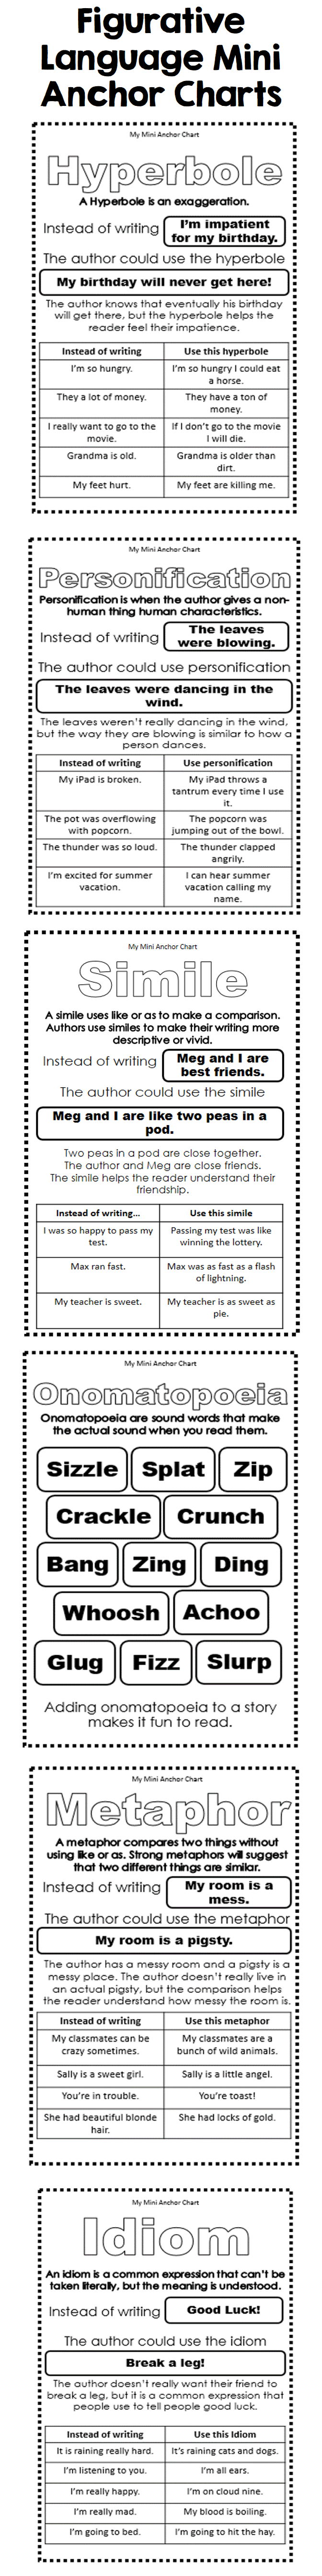 Importance Of English Language Essay These Mini Anchor Charts Are A Great Addition To An Interactive Reading Or  Writing Notebook Product Includes Mini Anchor Charts For Similes  Metaphors  How To Write An Essay High School also My English Essay Figurative Language Posters  Lang  Pinterest  Figurative Language  Essays For High School Students